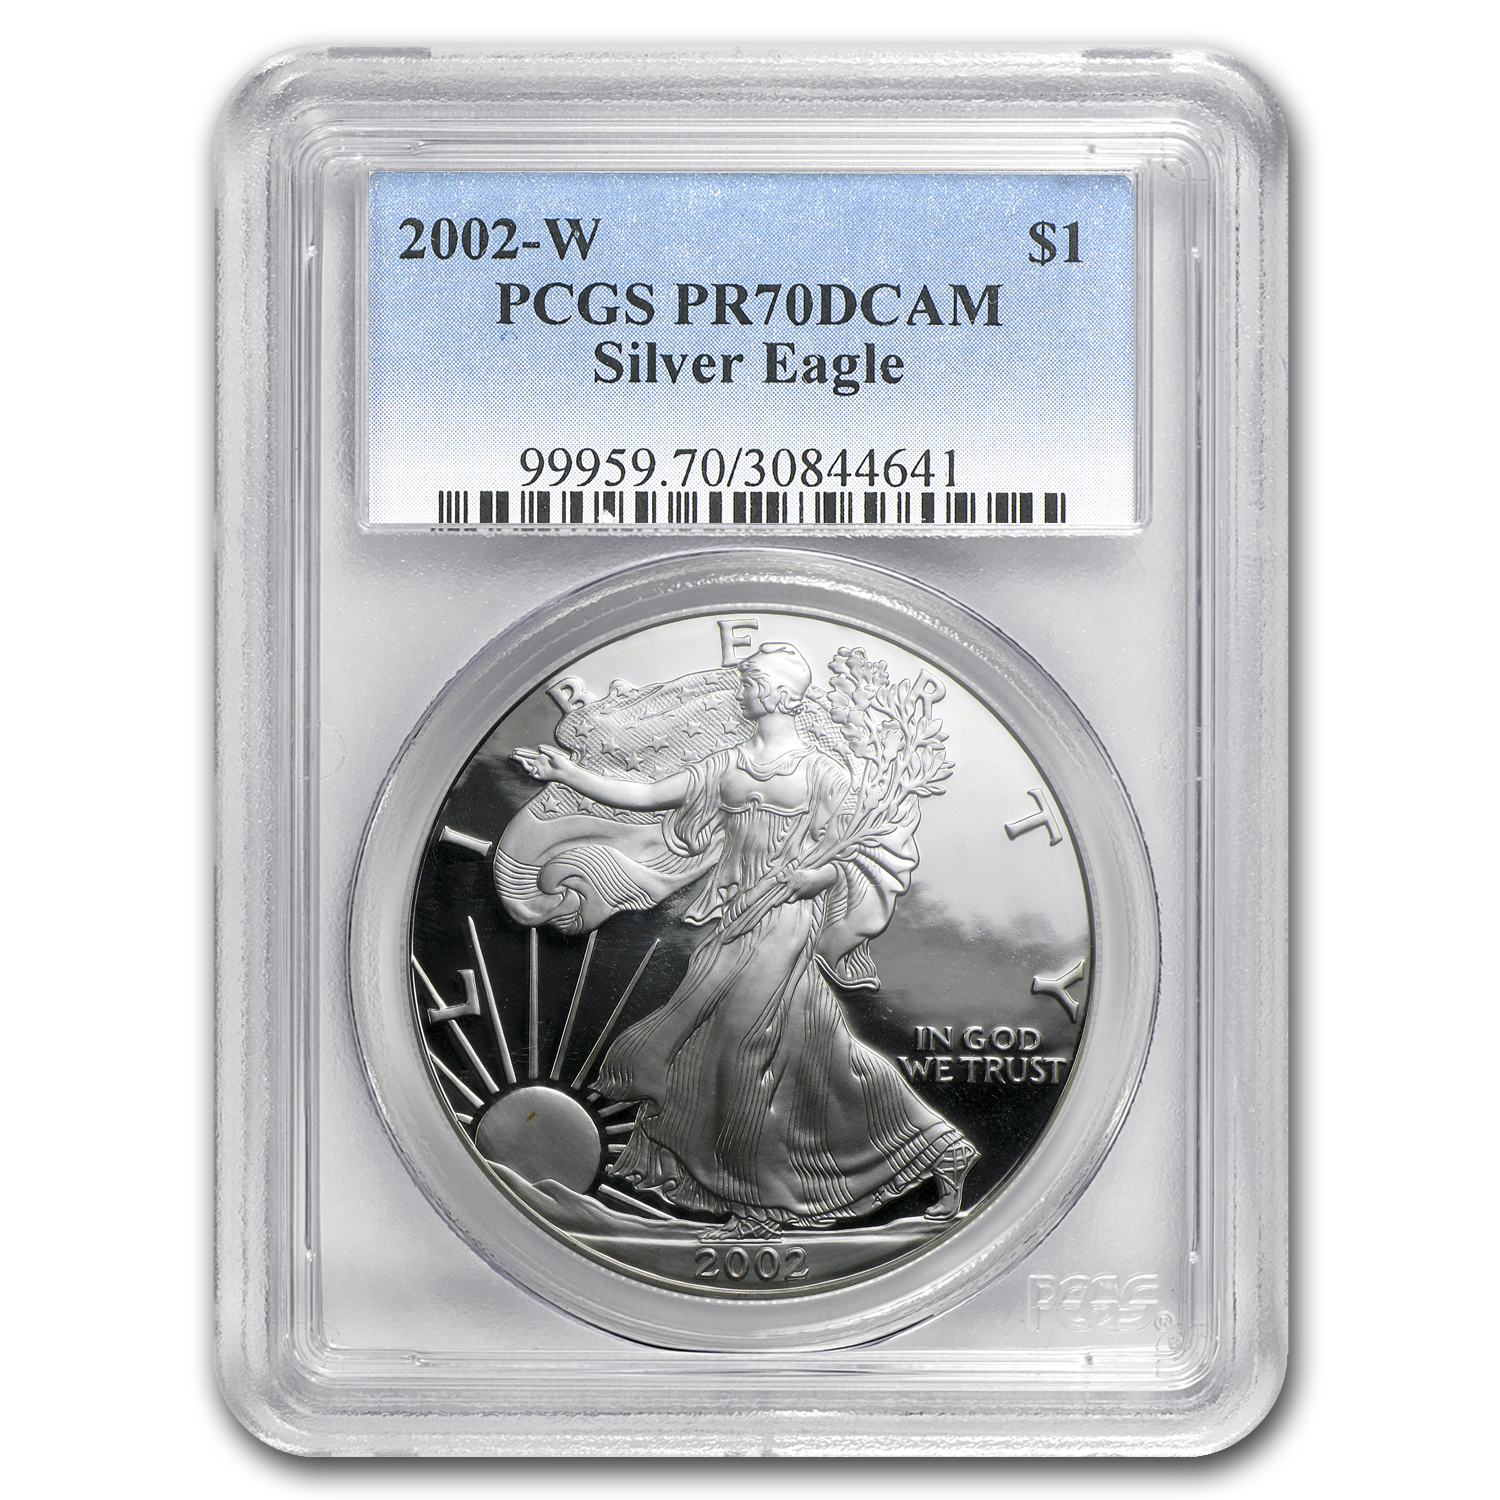 2002-W Proof Silver American Eagle PR-70 PCGS